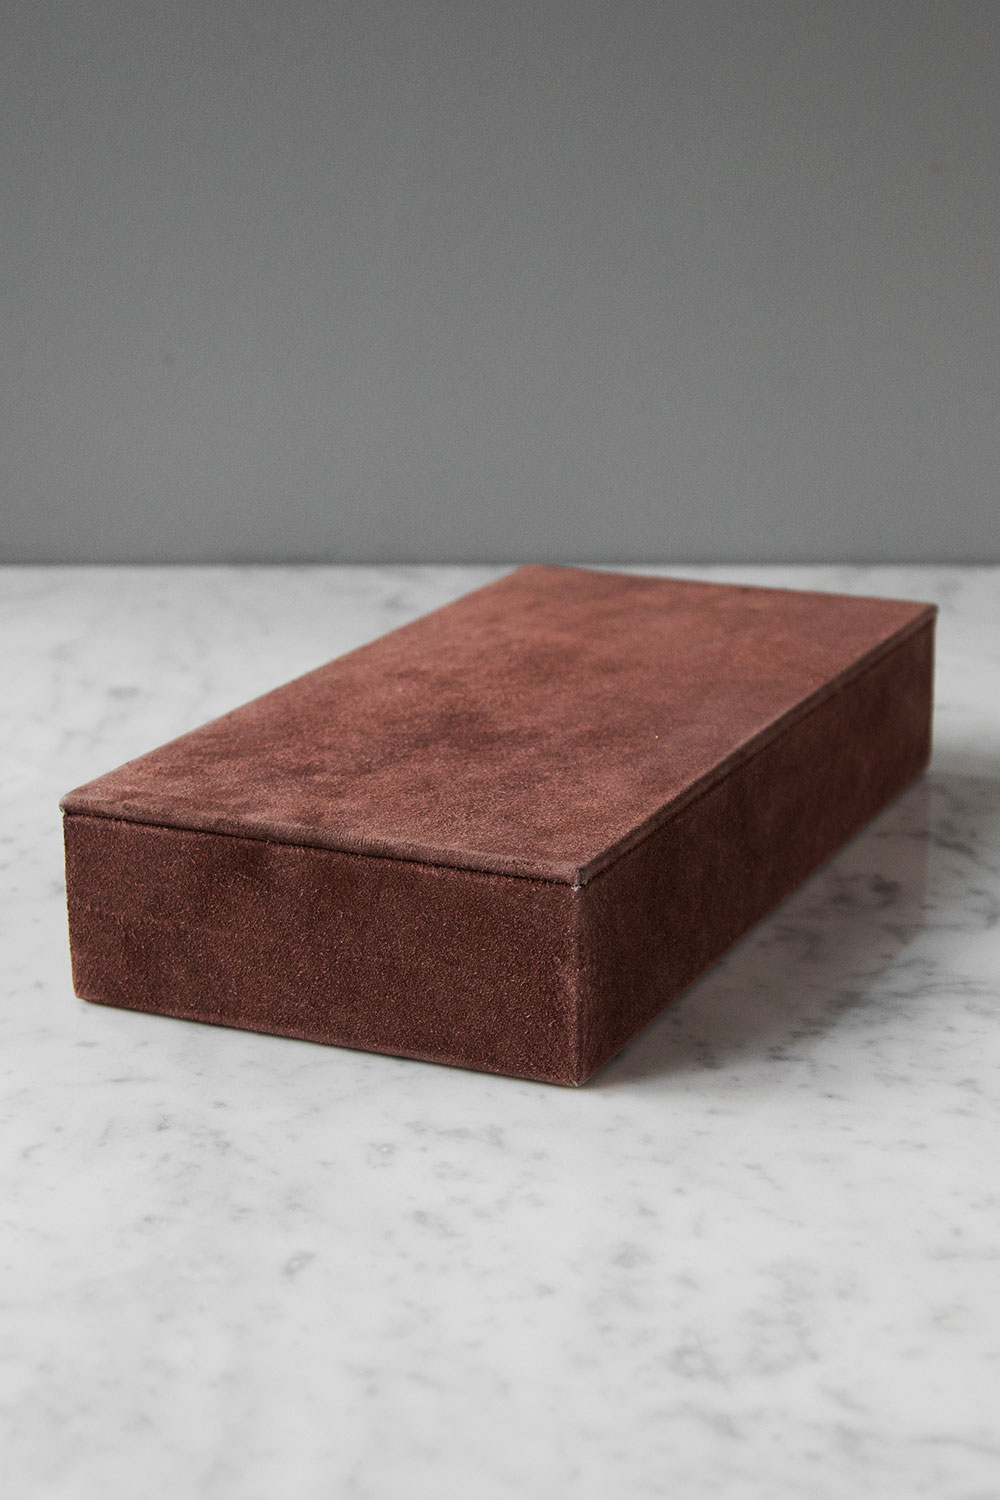 Suede Box Rectangular Pale Rose